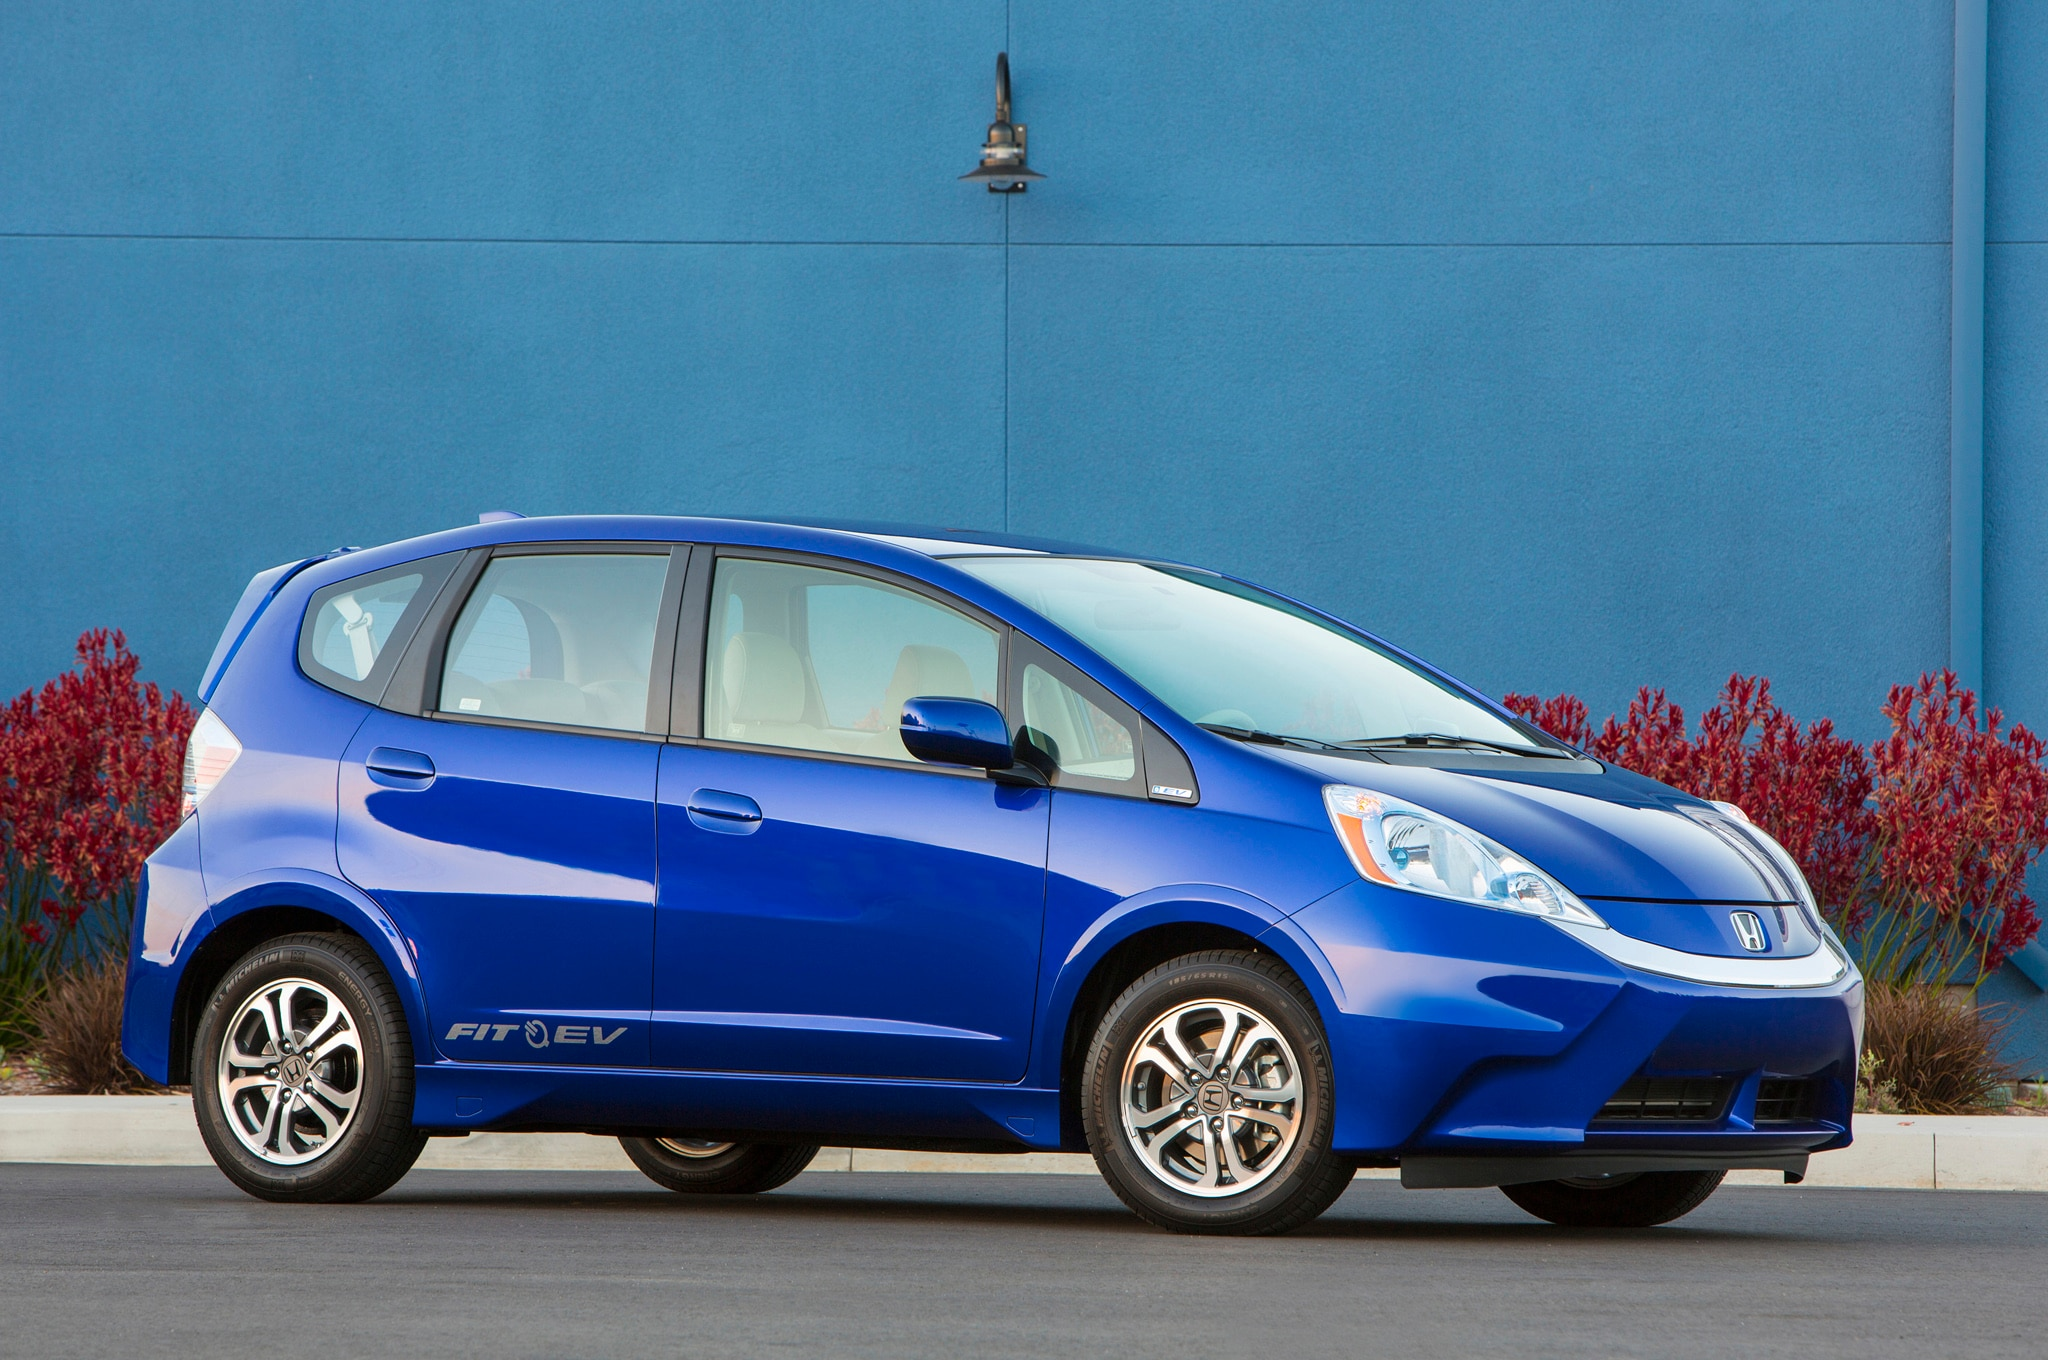 Honda fit ev leases extended price dropped again for Honda fit lease price